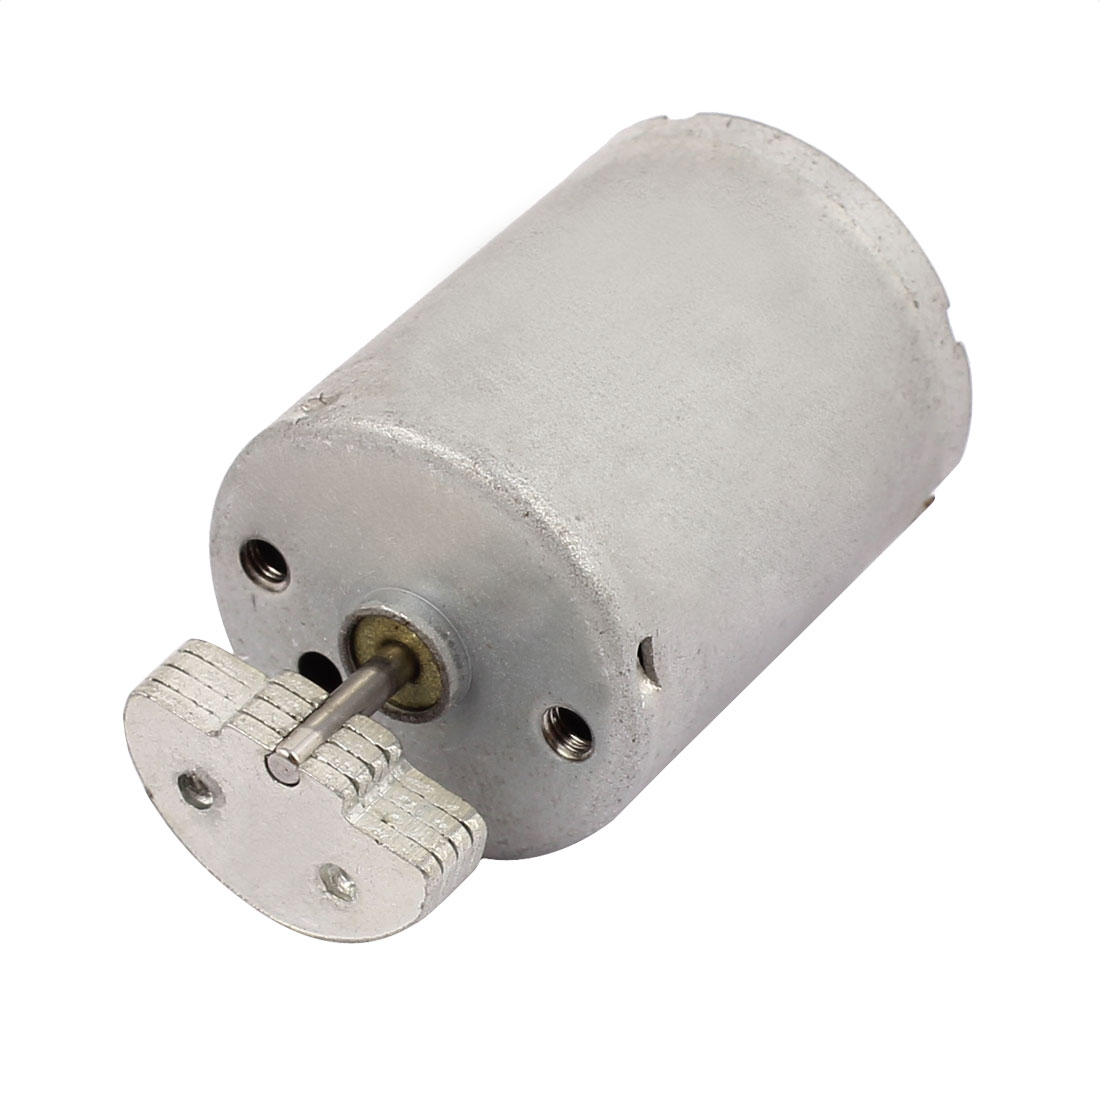 DC 24V 3800RPM Large Torque High Speed Micro DC Motor for Electric Massage